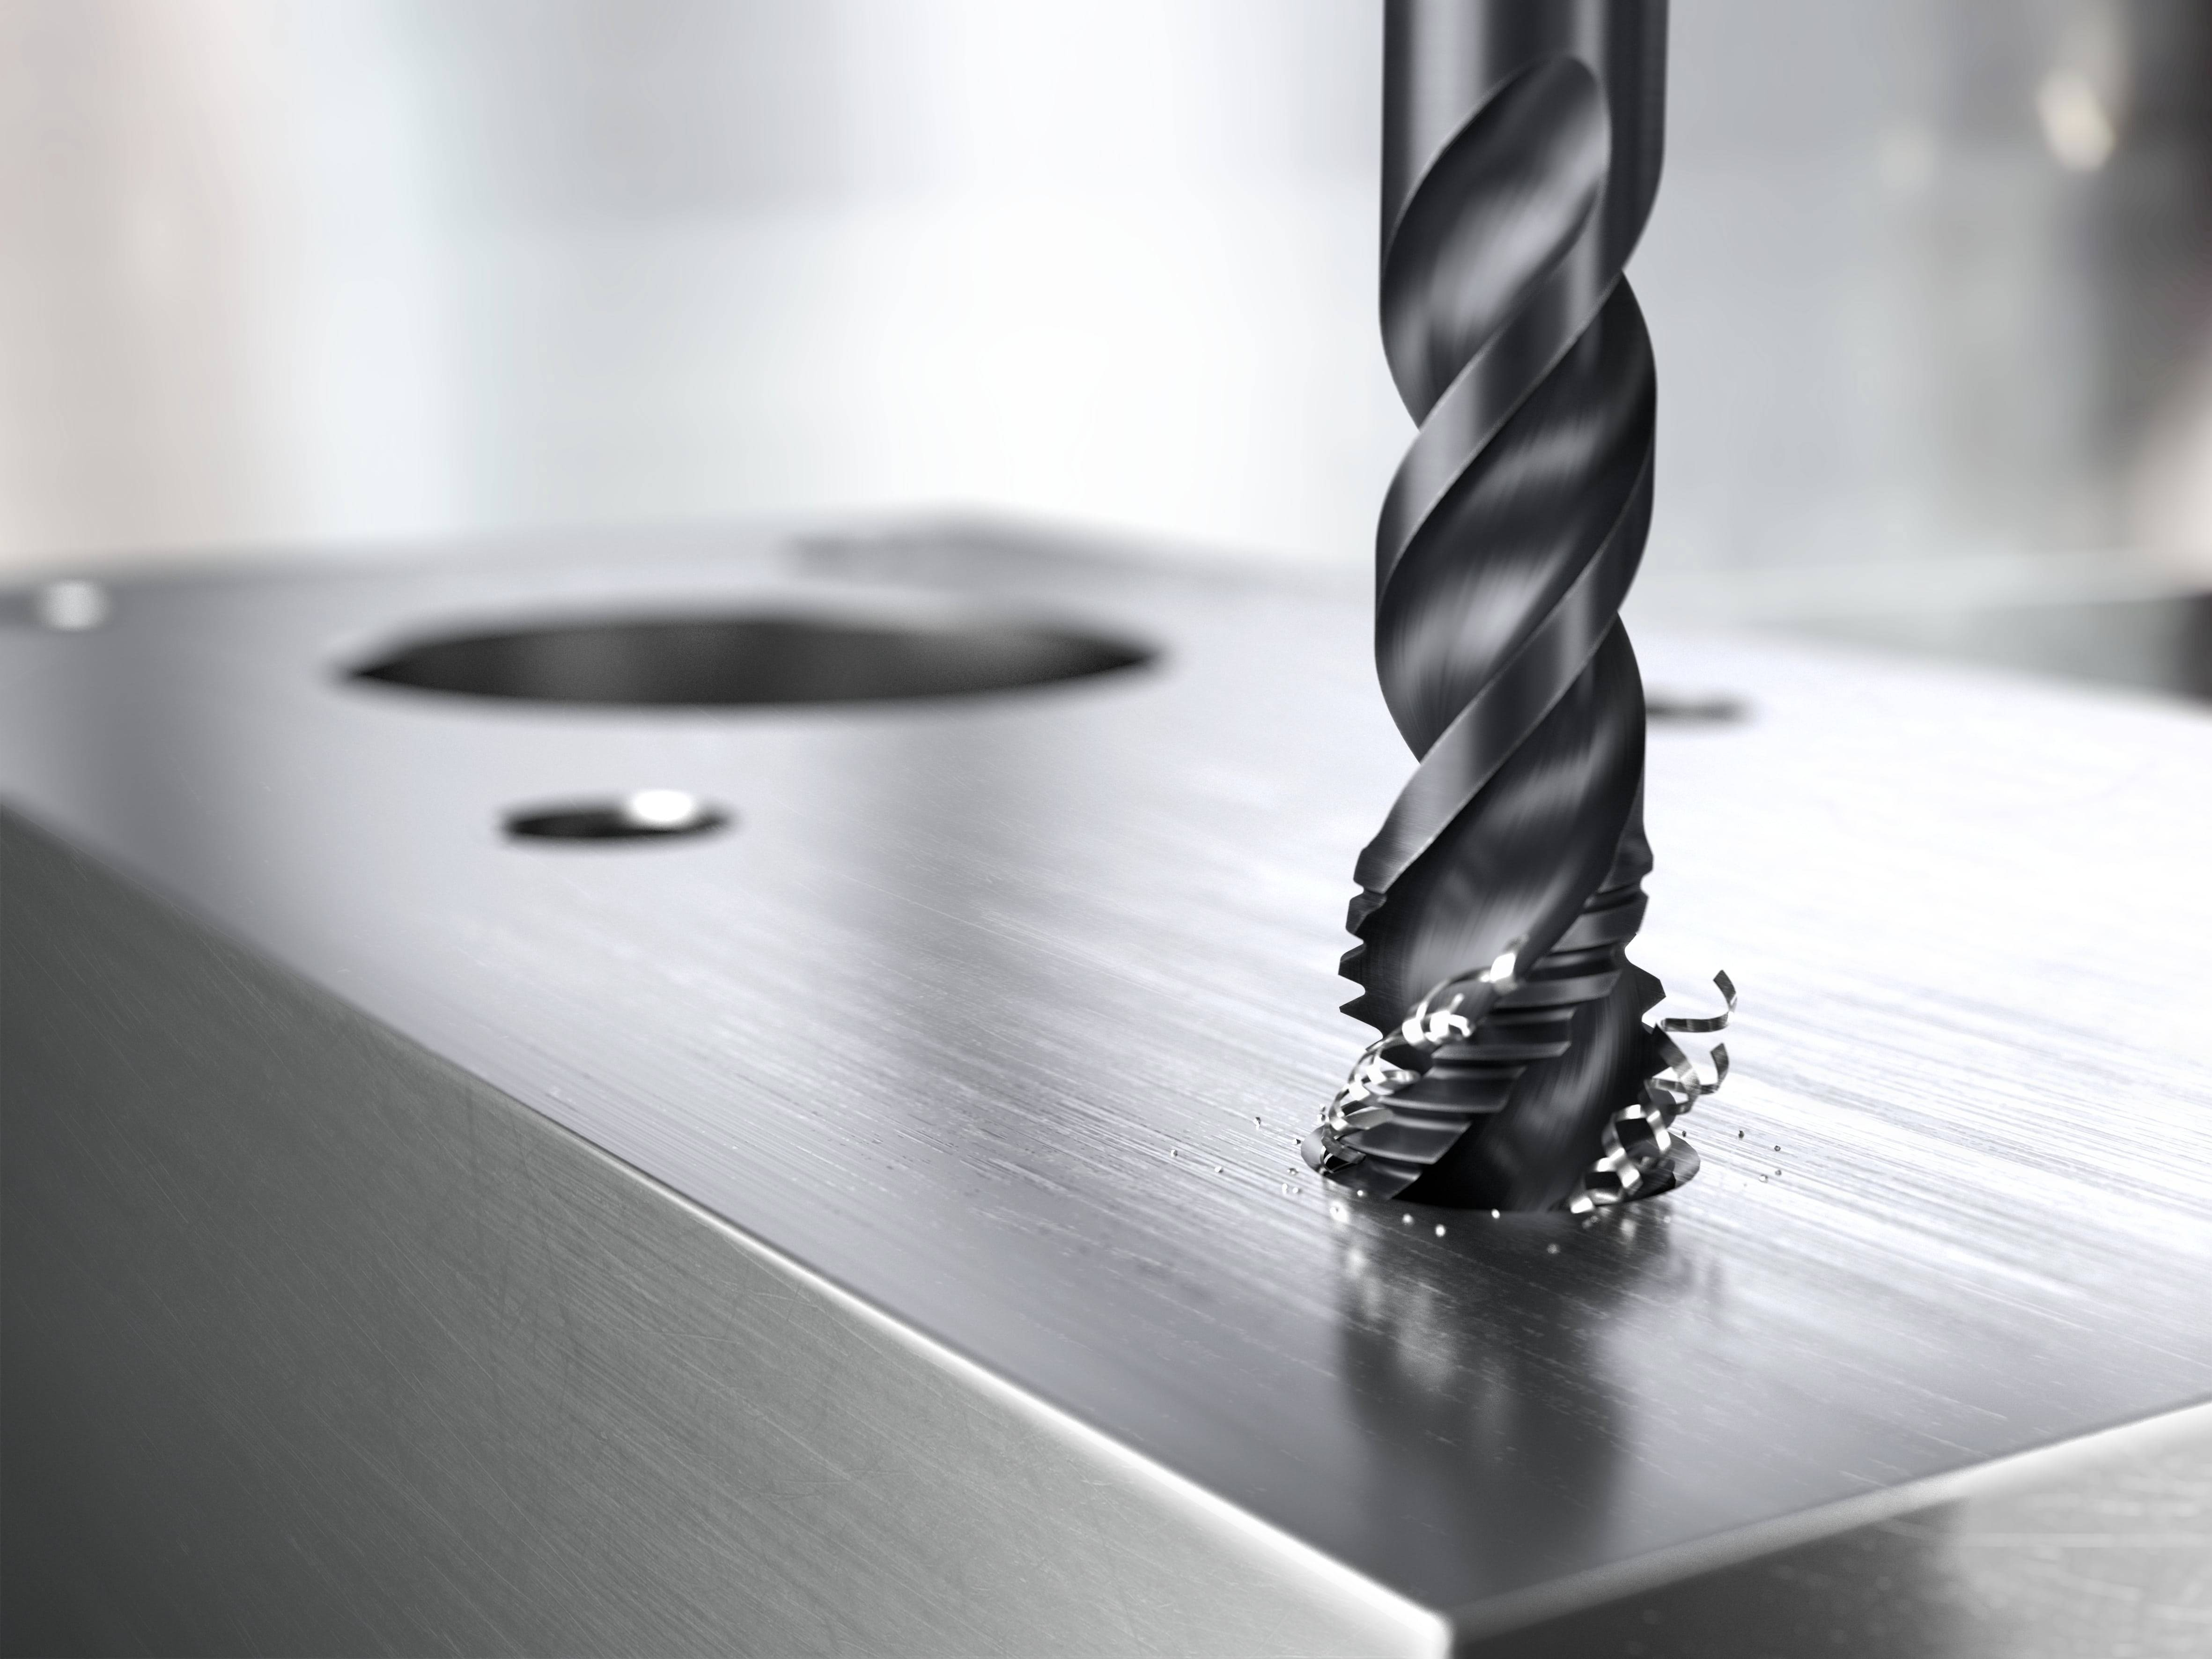 Sandvik's CoroTap delivers material-specific solutions for threading a variety of metals